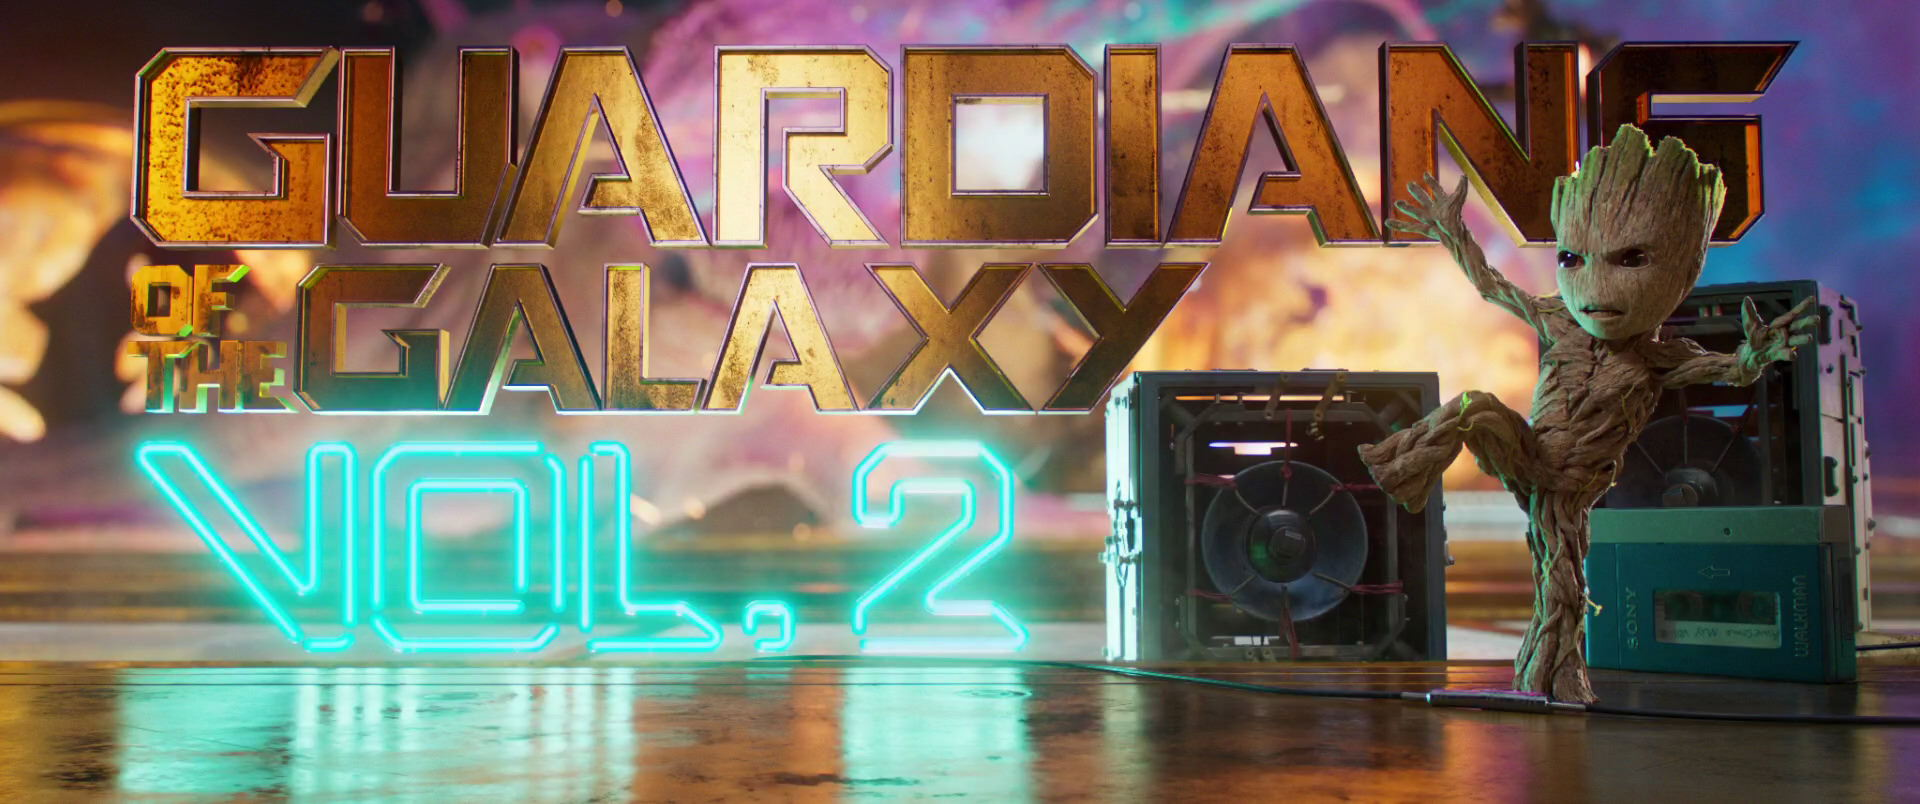 Guardians of the Galaxy Vol. 2 (2017)